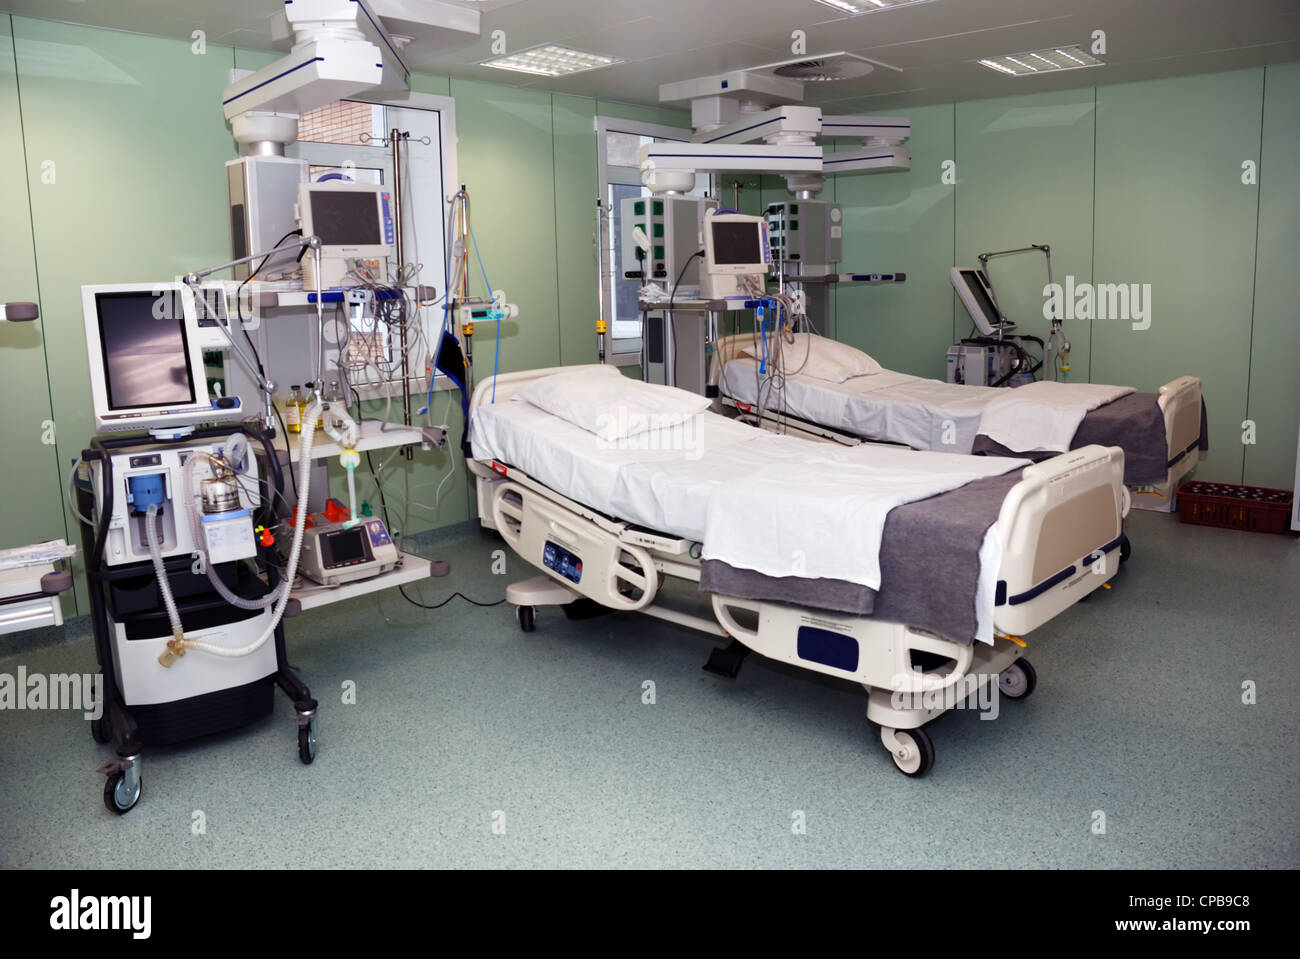 ward in hospital with modern medical facilities - Stock Image